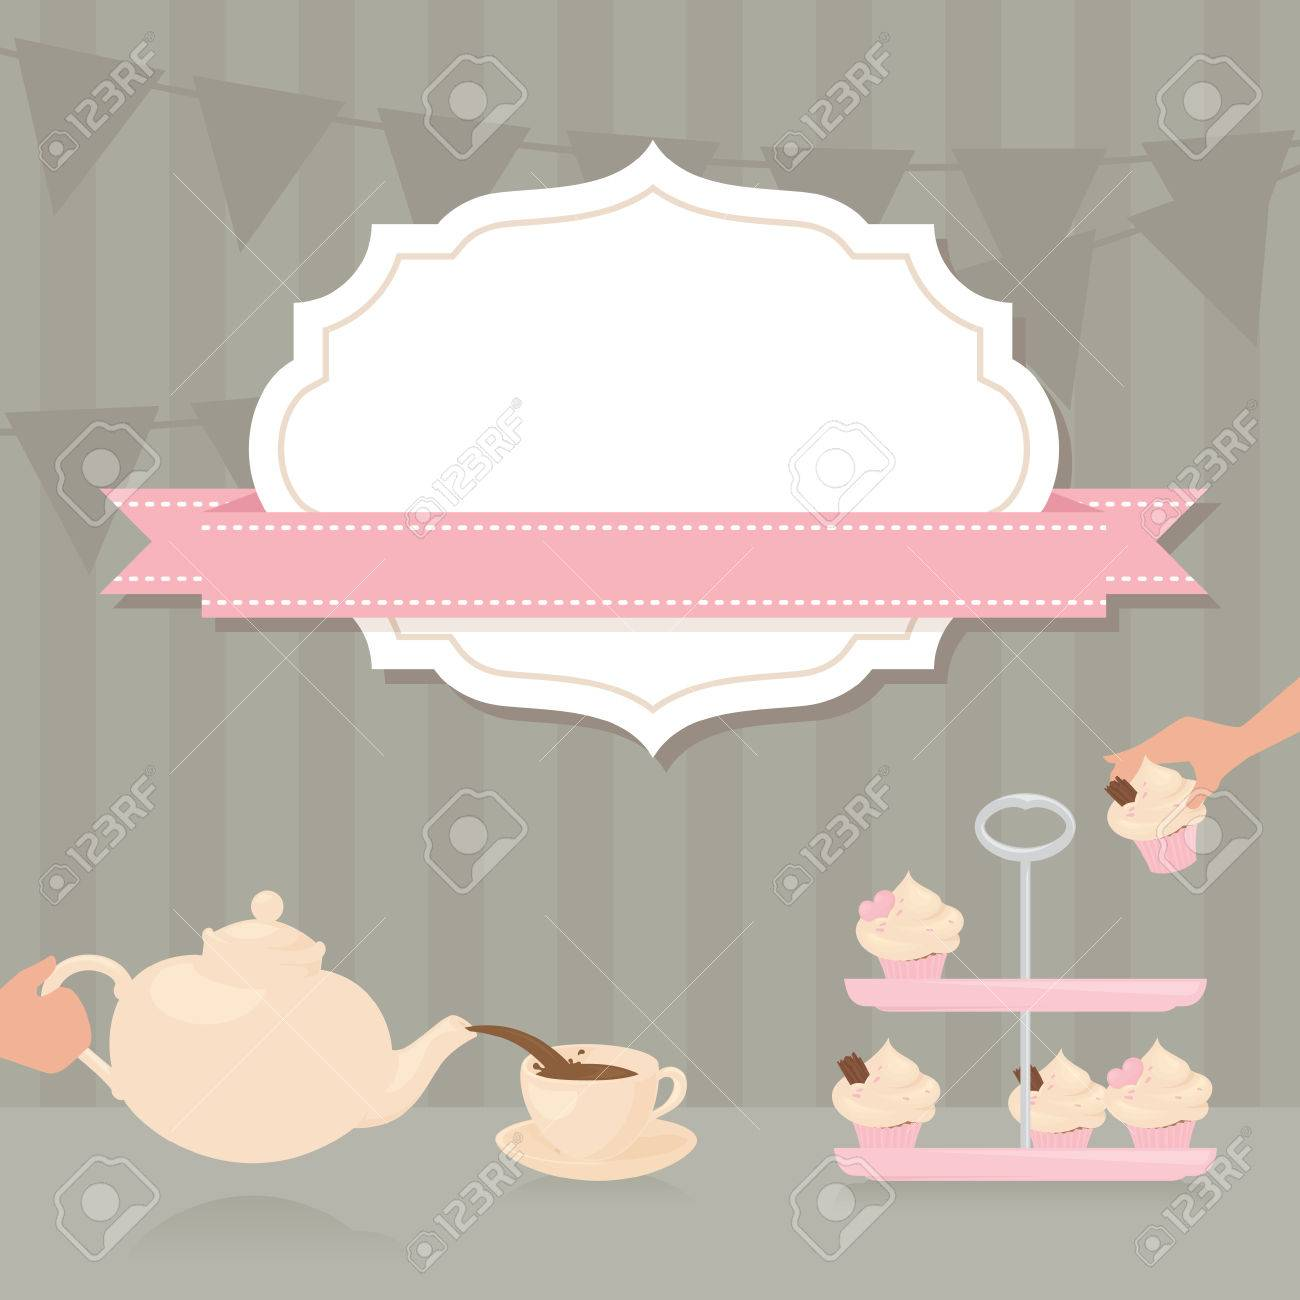 Elegant tea party invitation template with teacups cartoon vector - Tea Party Invitation With Copy Space Stock Vector 40920318